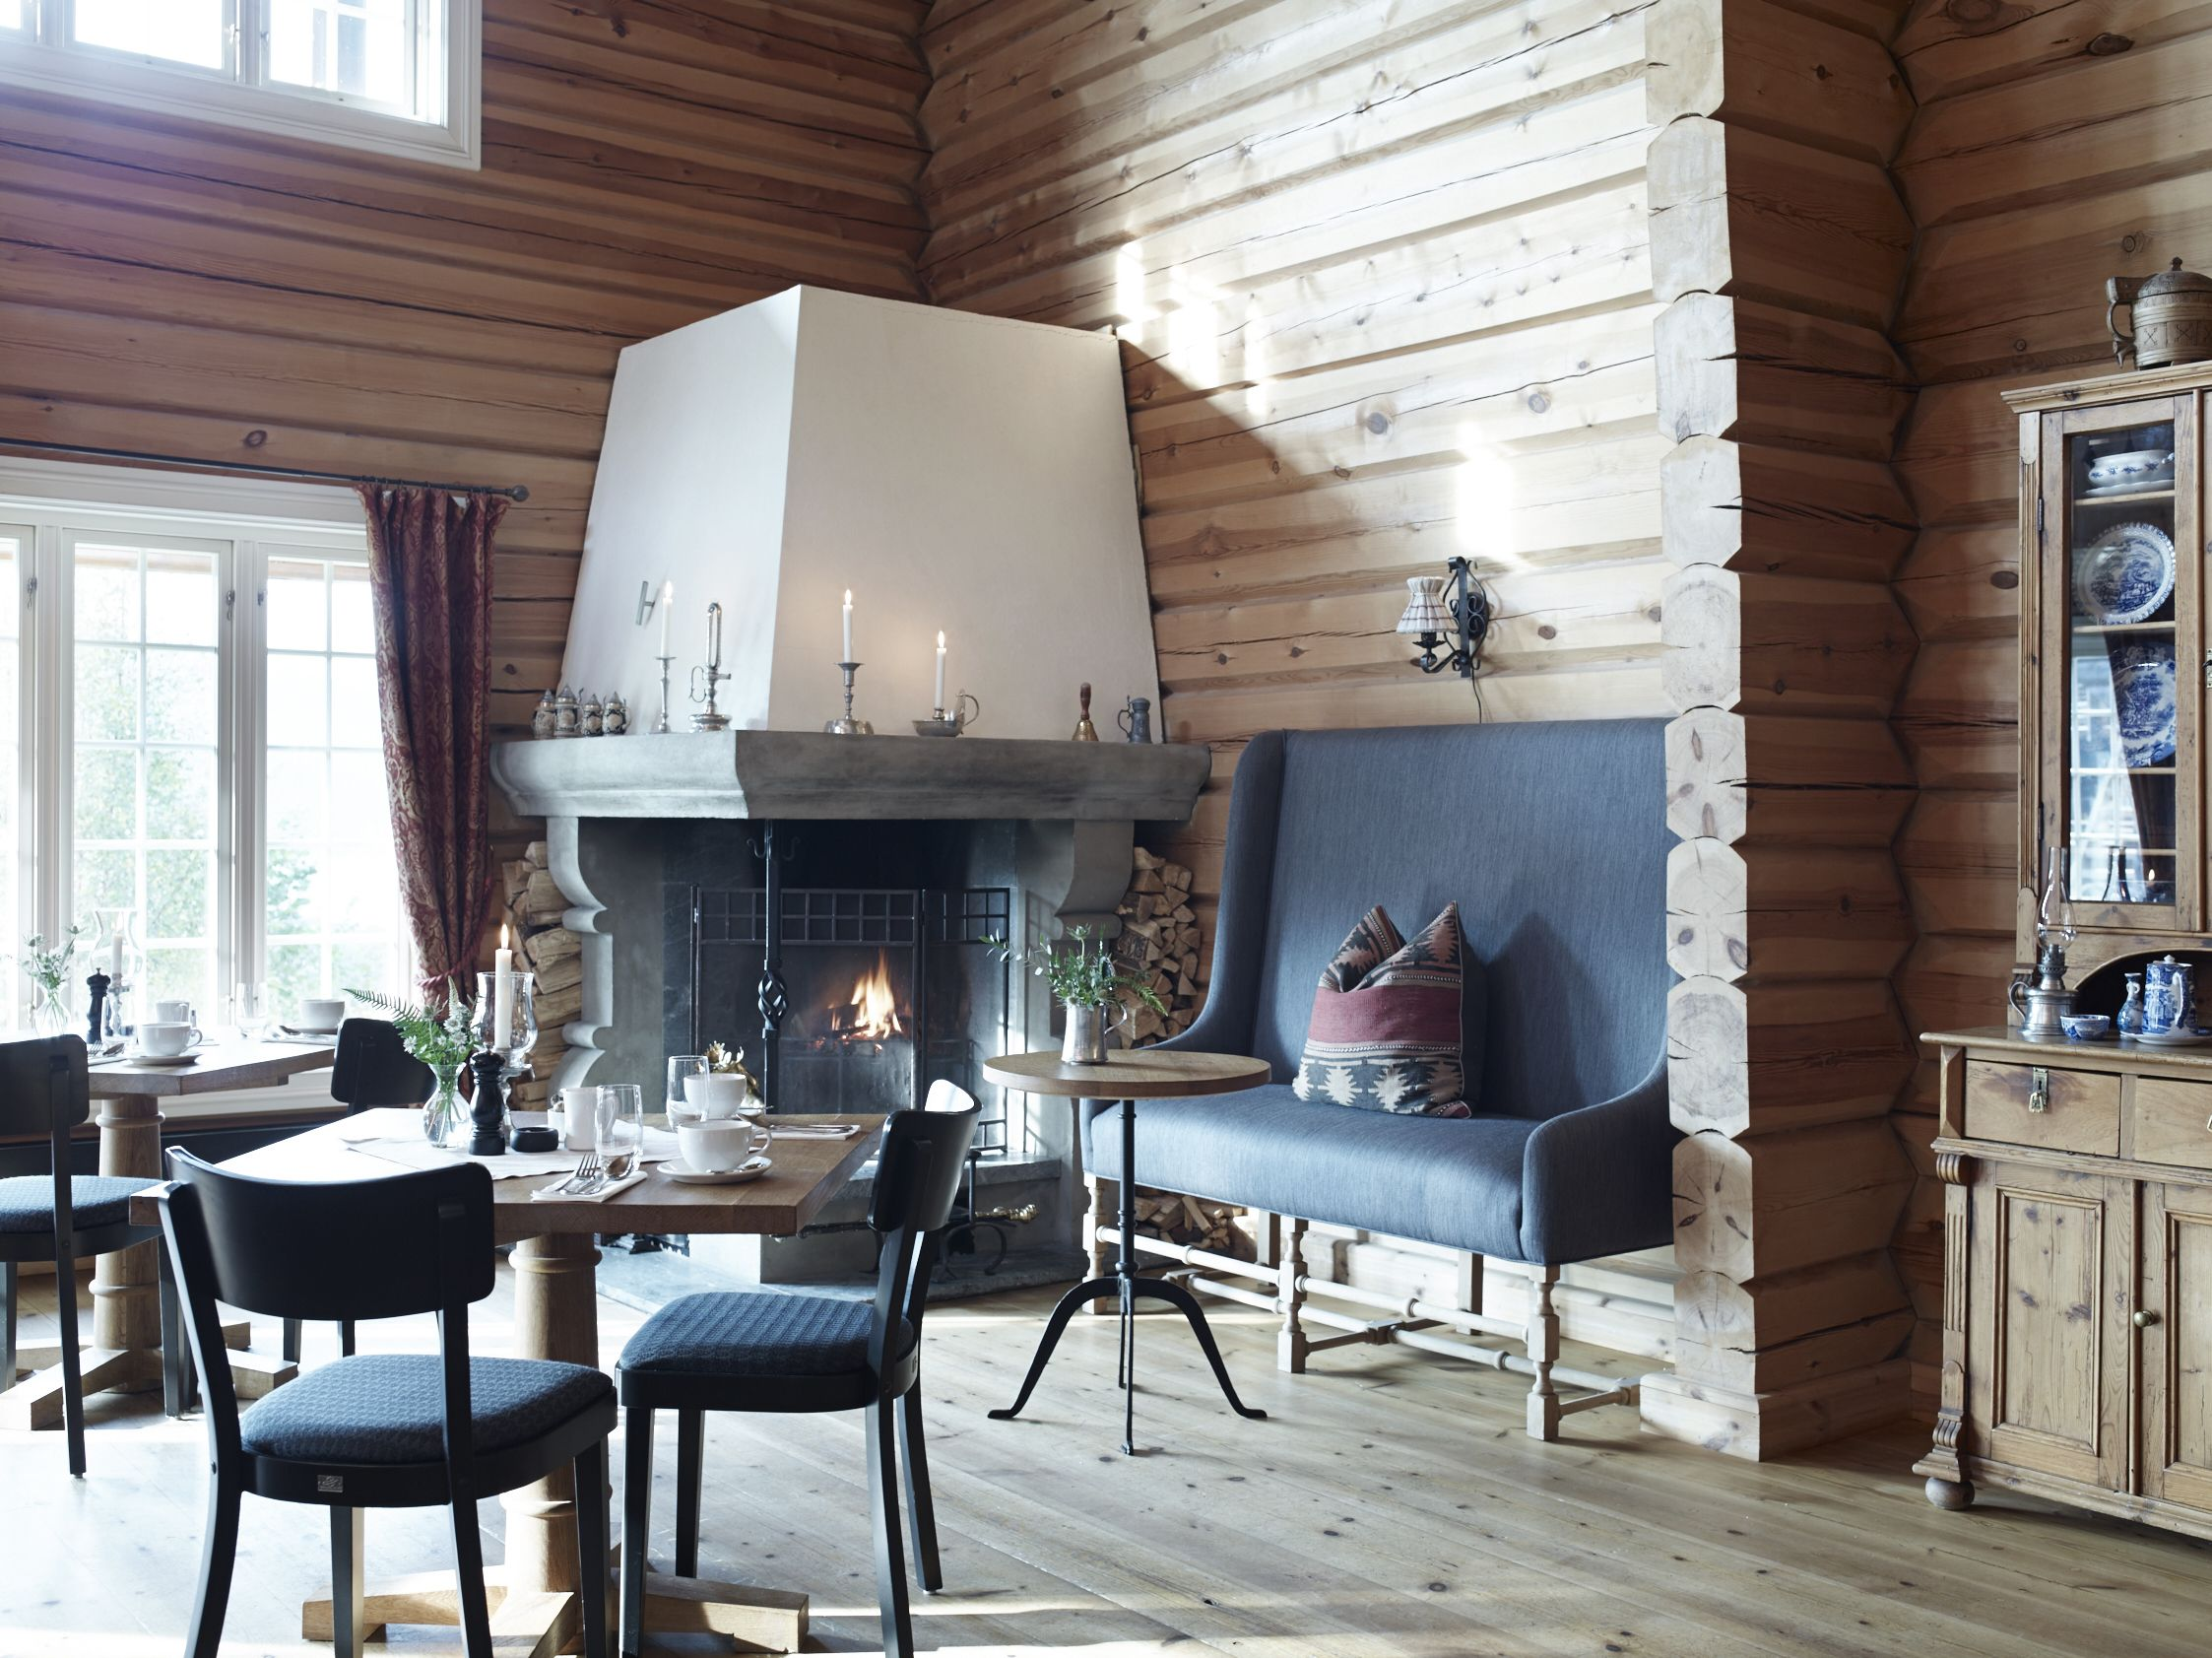 Dining Room With Open Fireplace At Storfjord Hotel